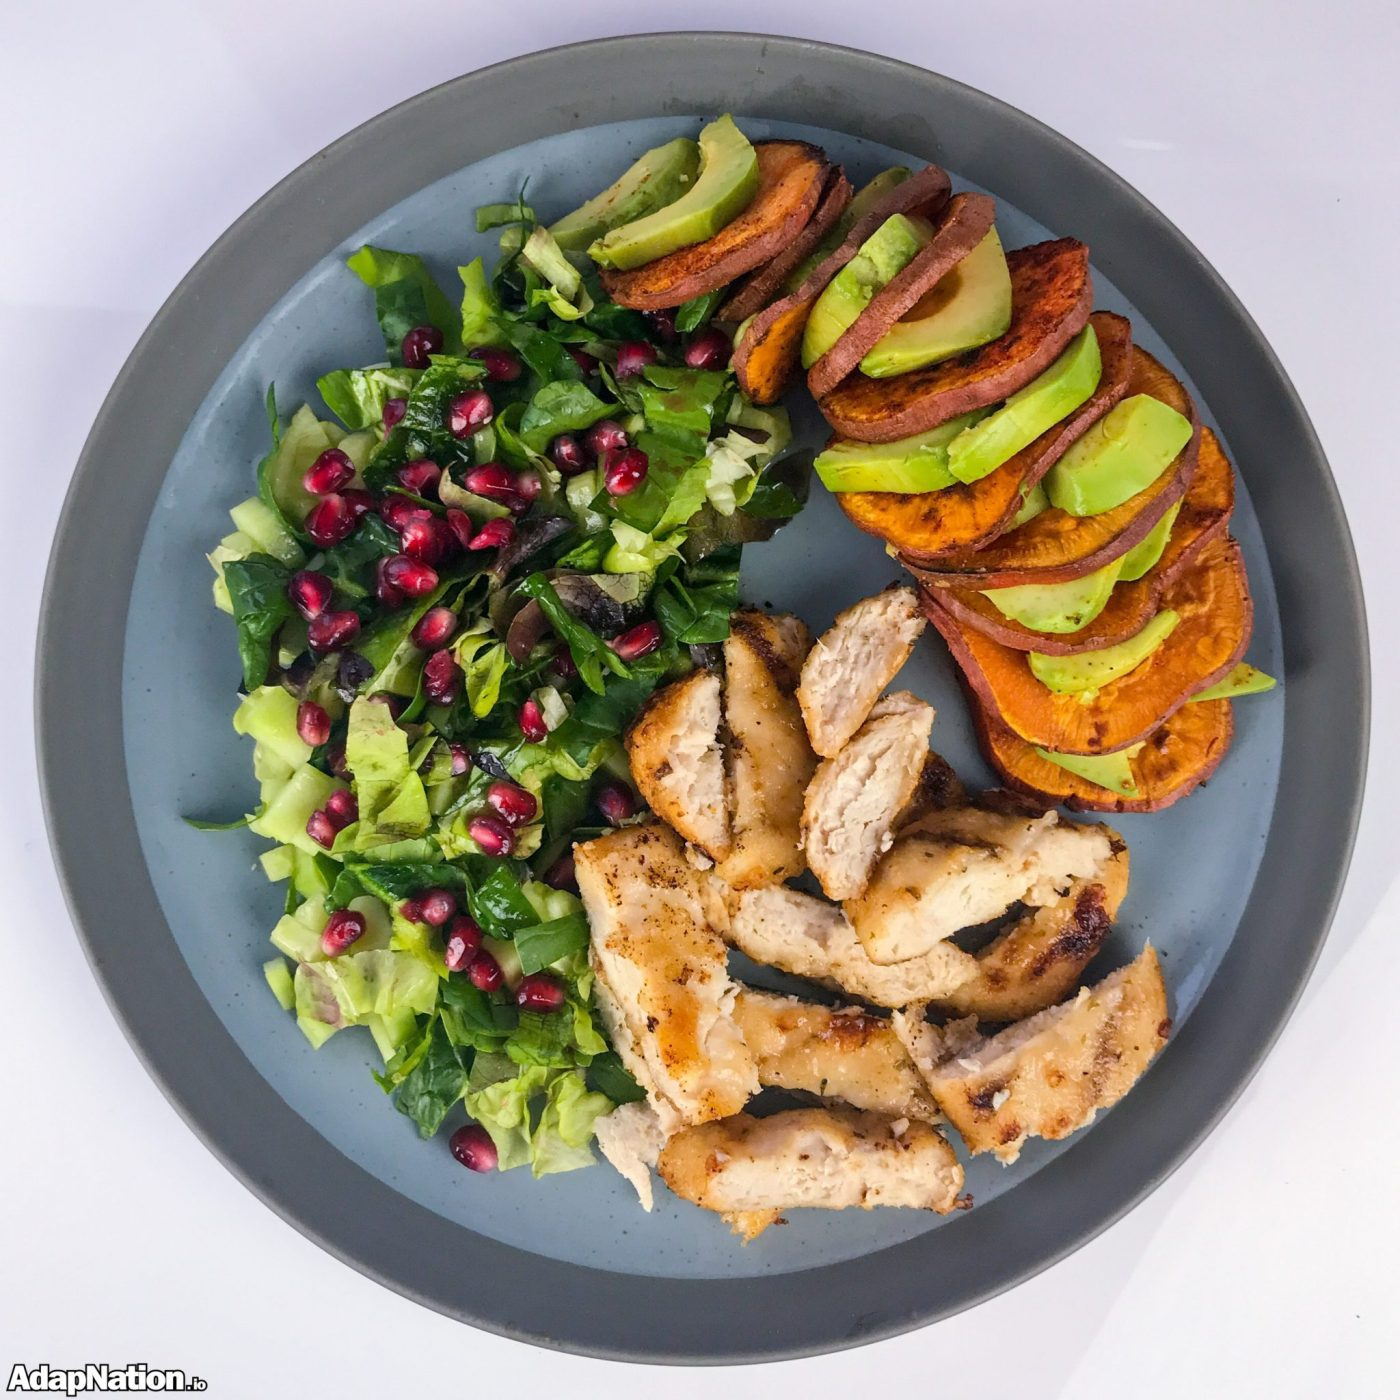 Chicken & Pomegranate Salad, with Sweet Potato & Avocado